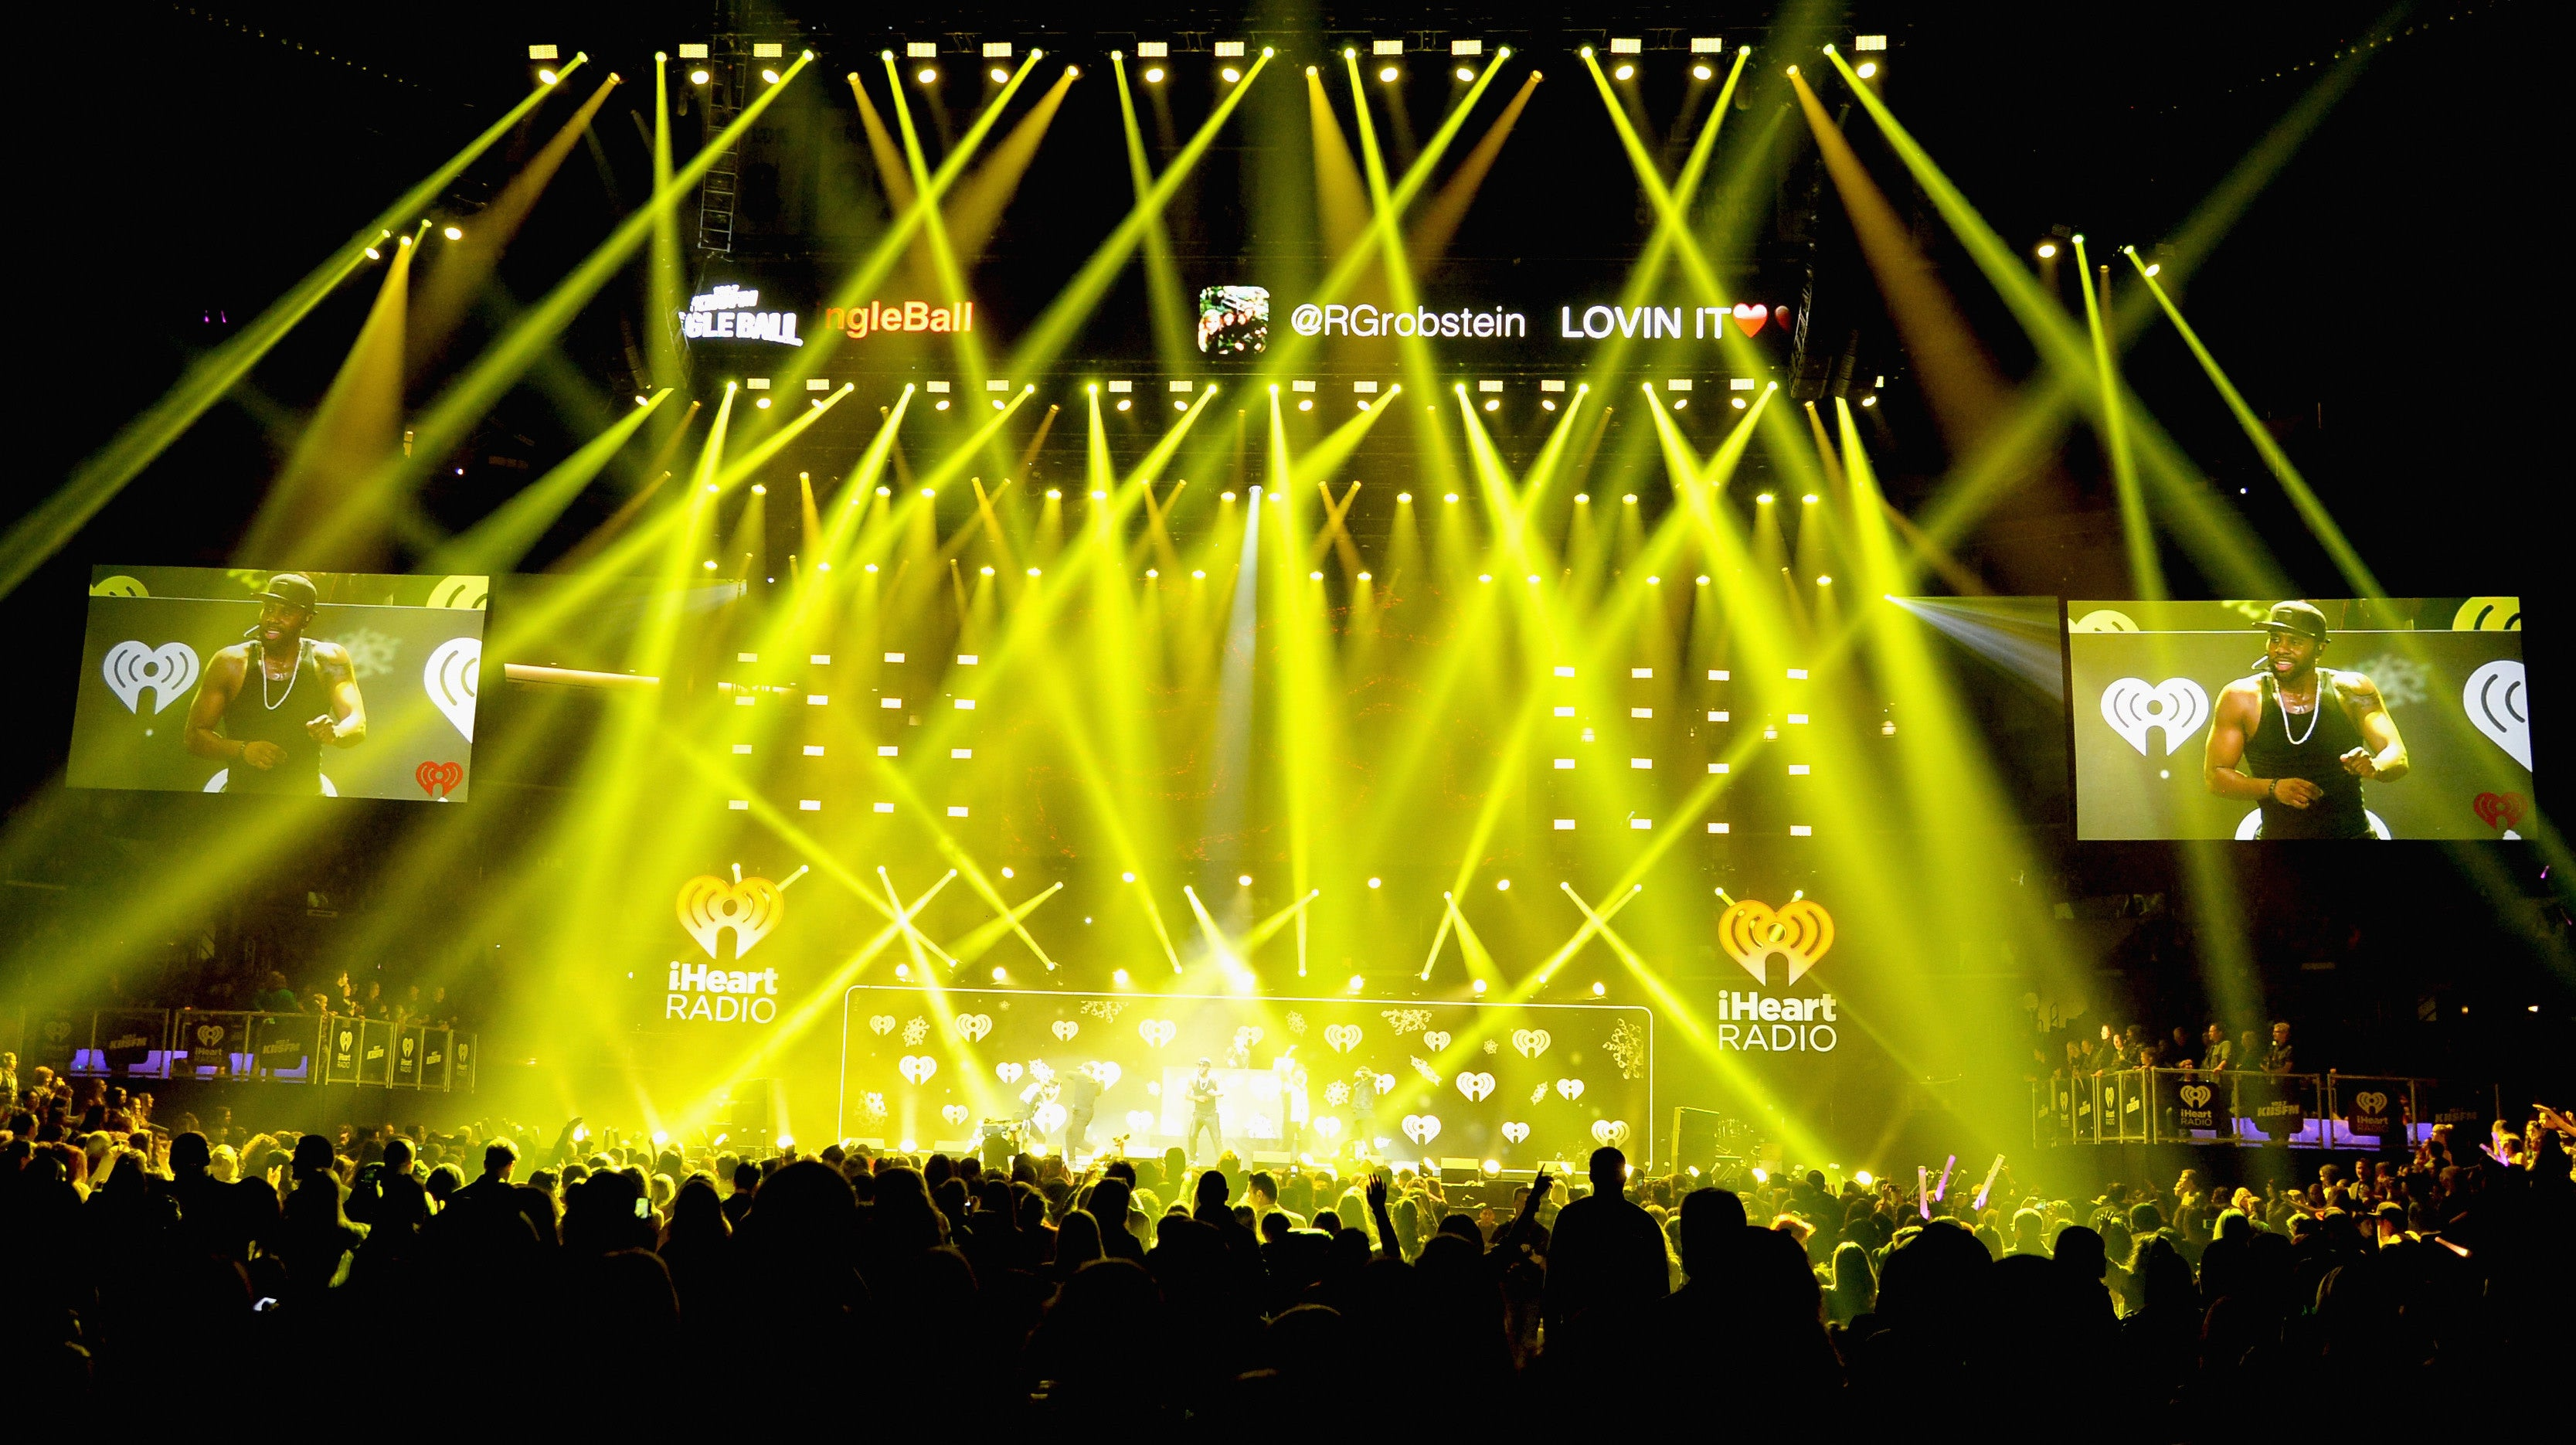 The Best Place To Stand At A Concert, According To A Sound Engineer